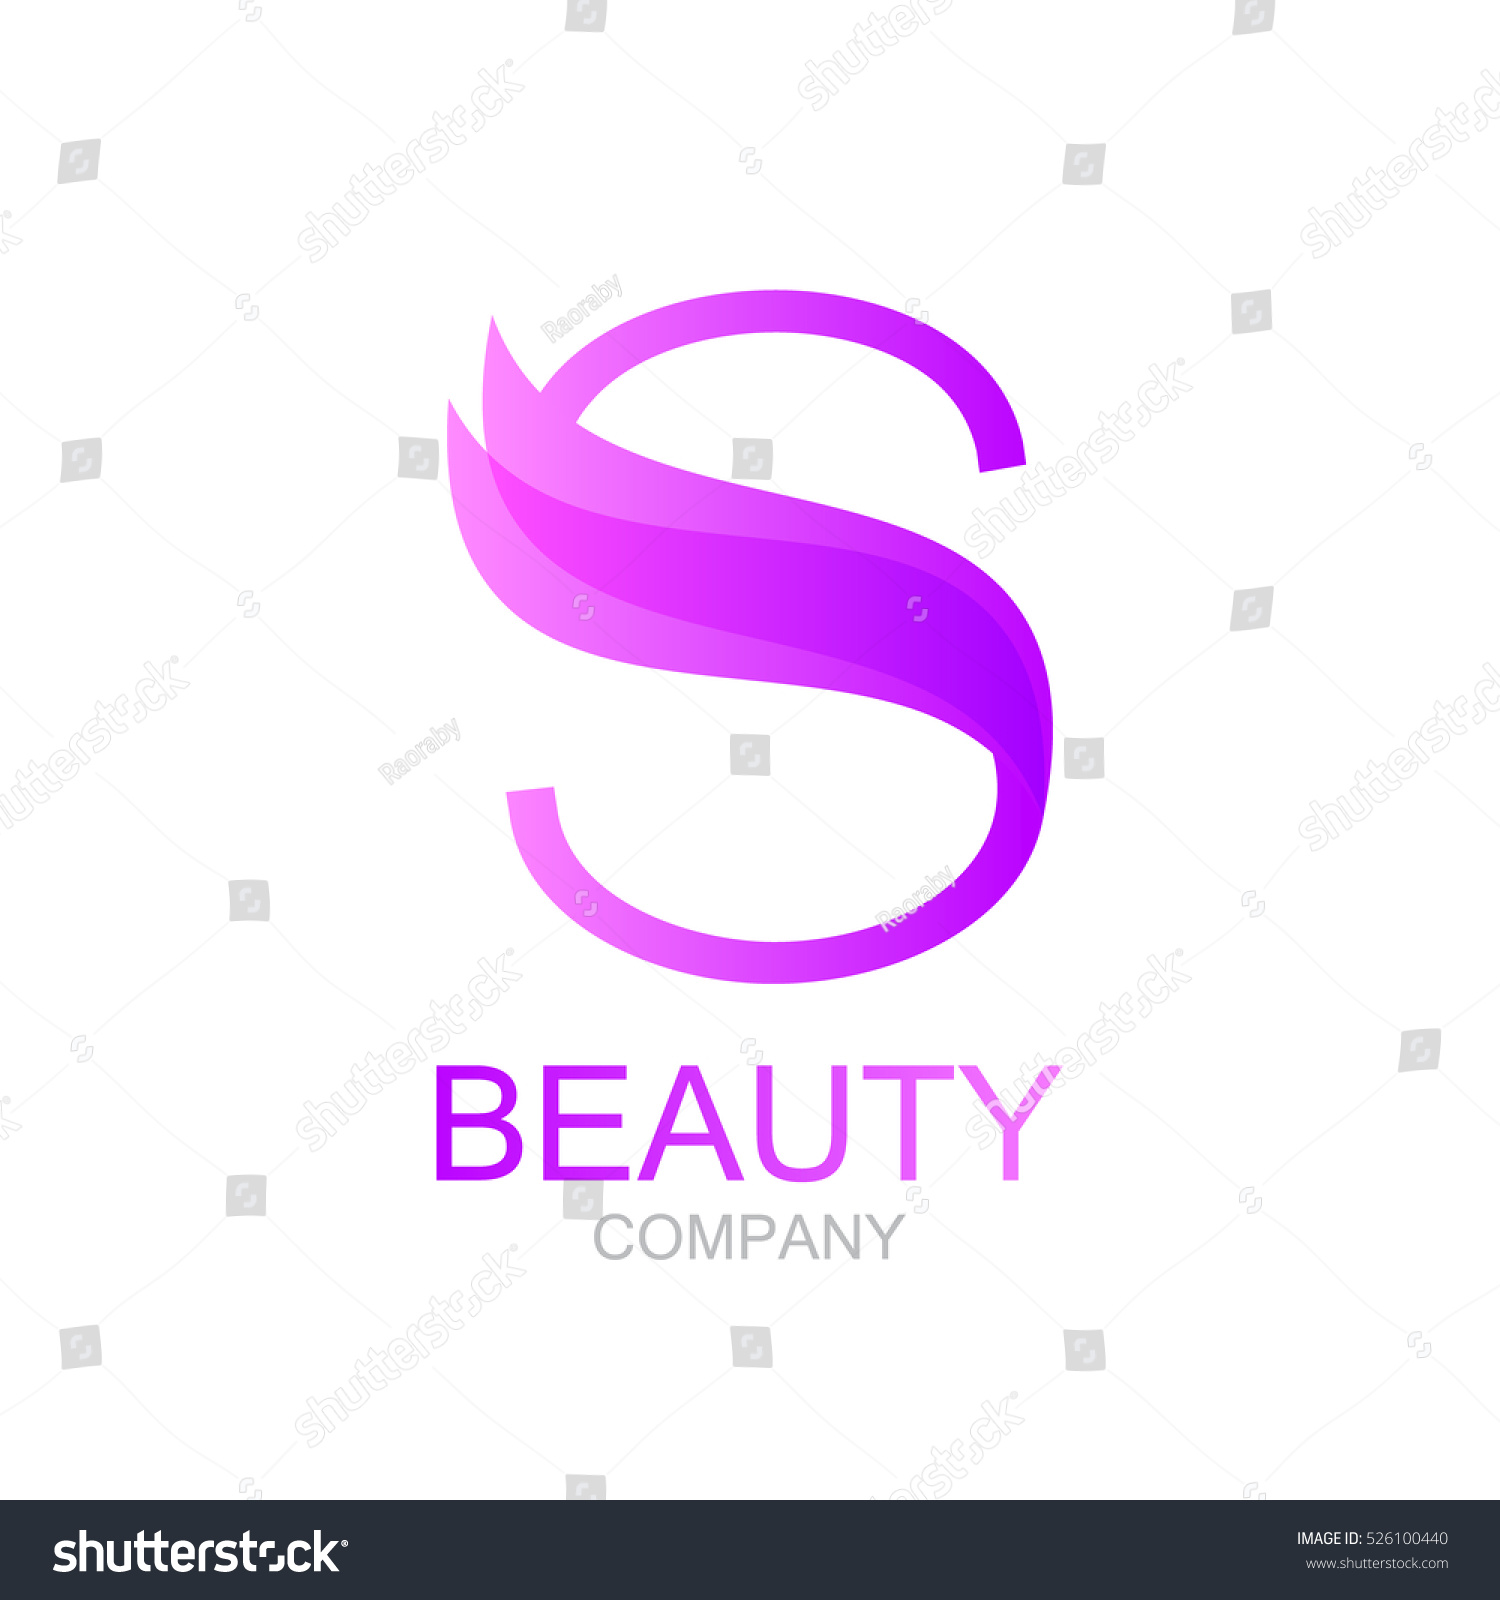 Abstract letter s logo design template stock vector for Abstract beauty salon